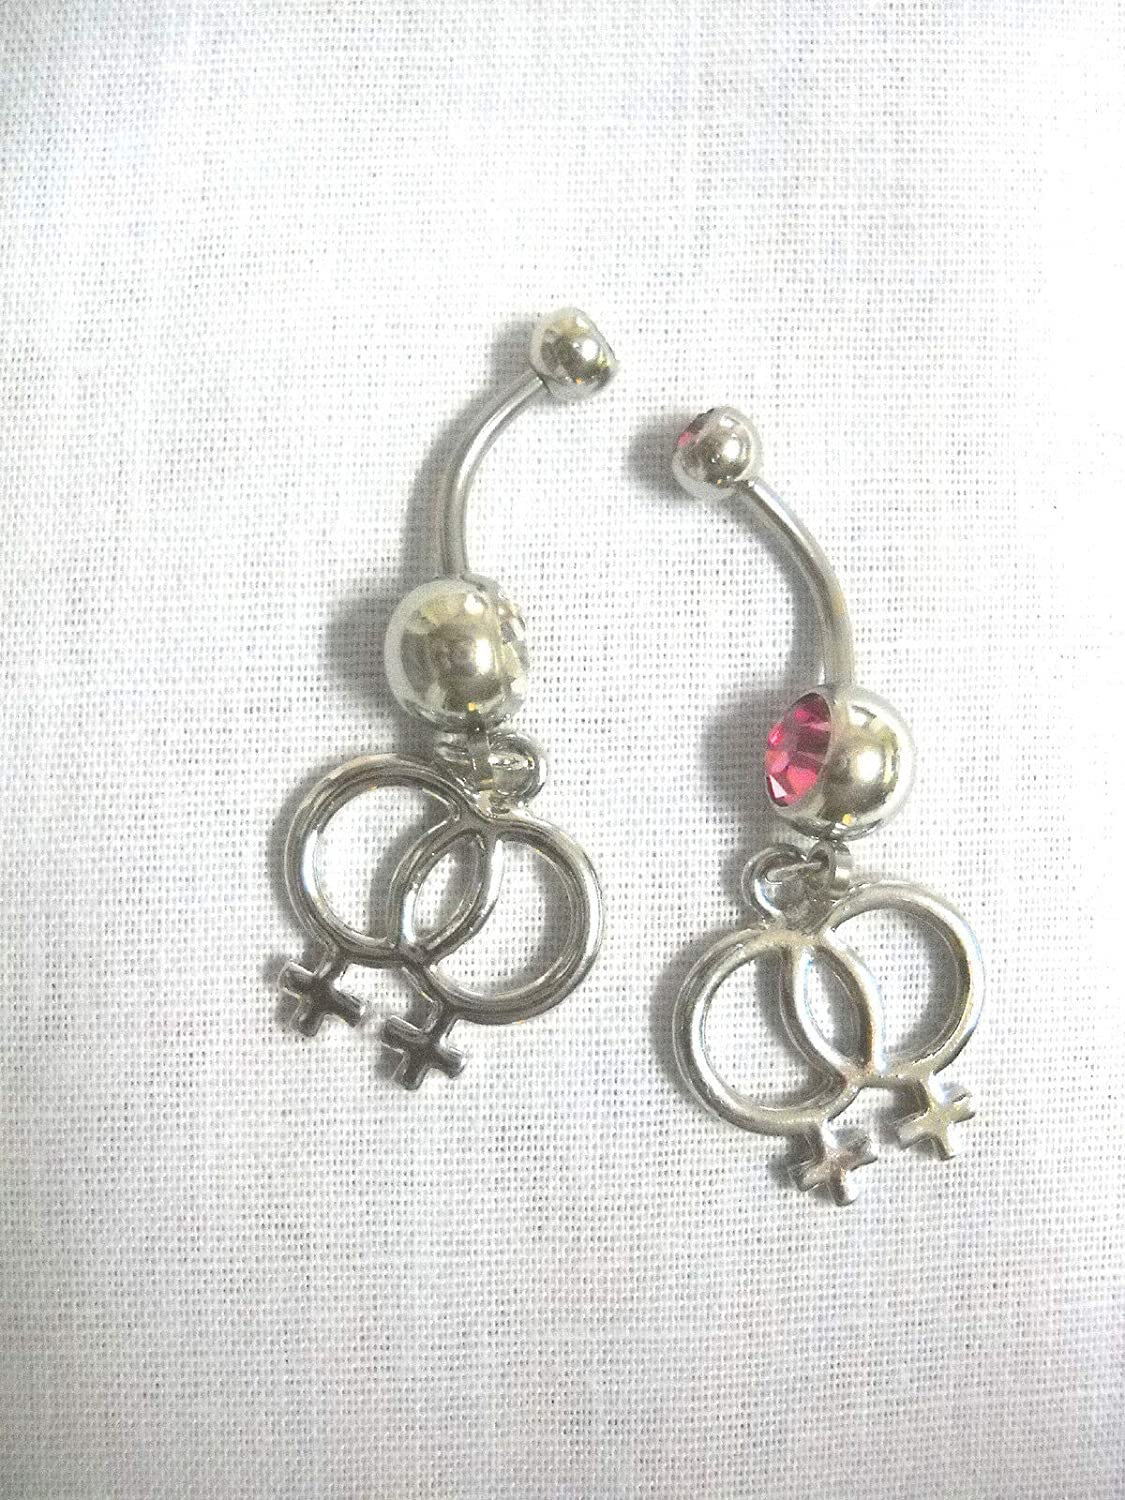 Clear Pink 14g Belly Ring Belly Bars KEZ-3691 2 Lesbian Pride//Charms